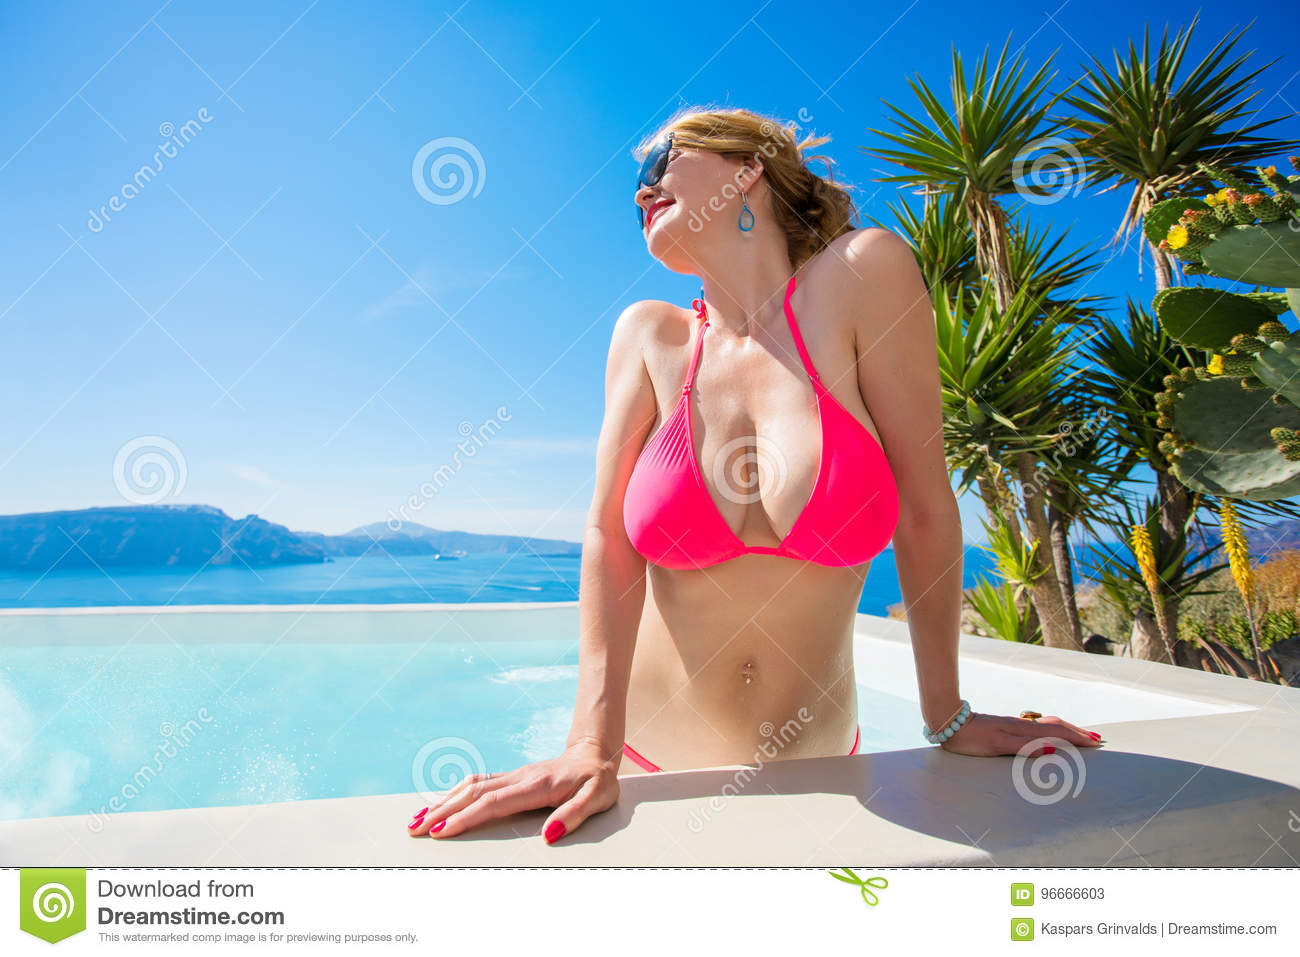 woman with big boobs getting out of pool stock image - image of